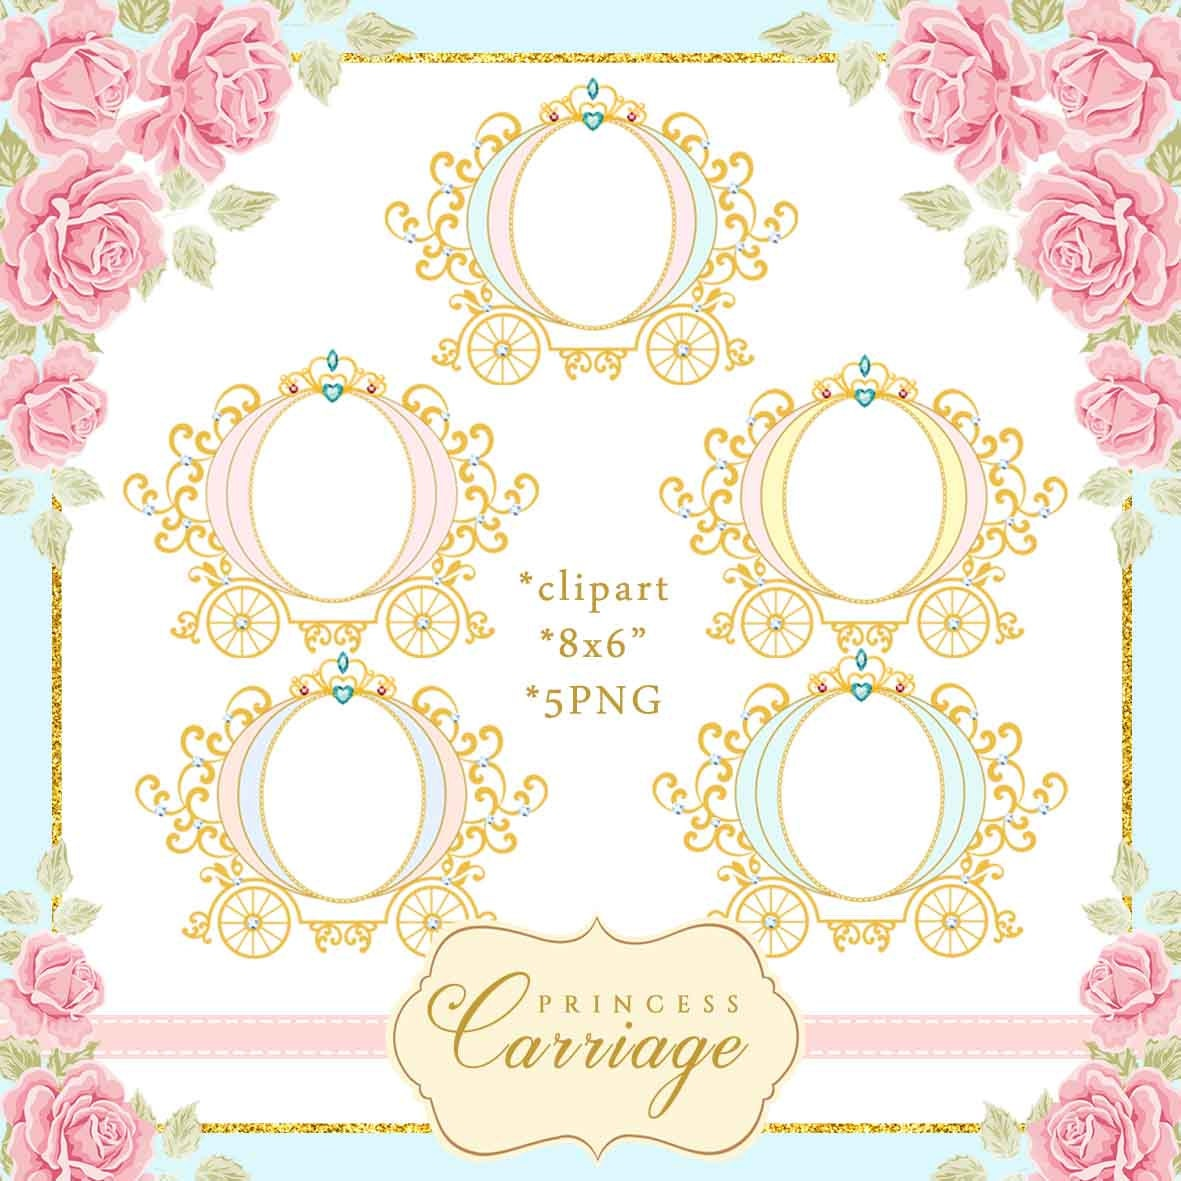 Princess Carriage Clipart frame Vintage Carriage | Etsy